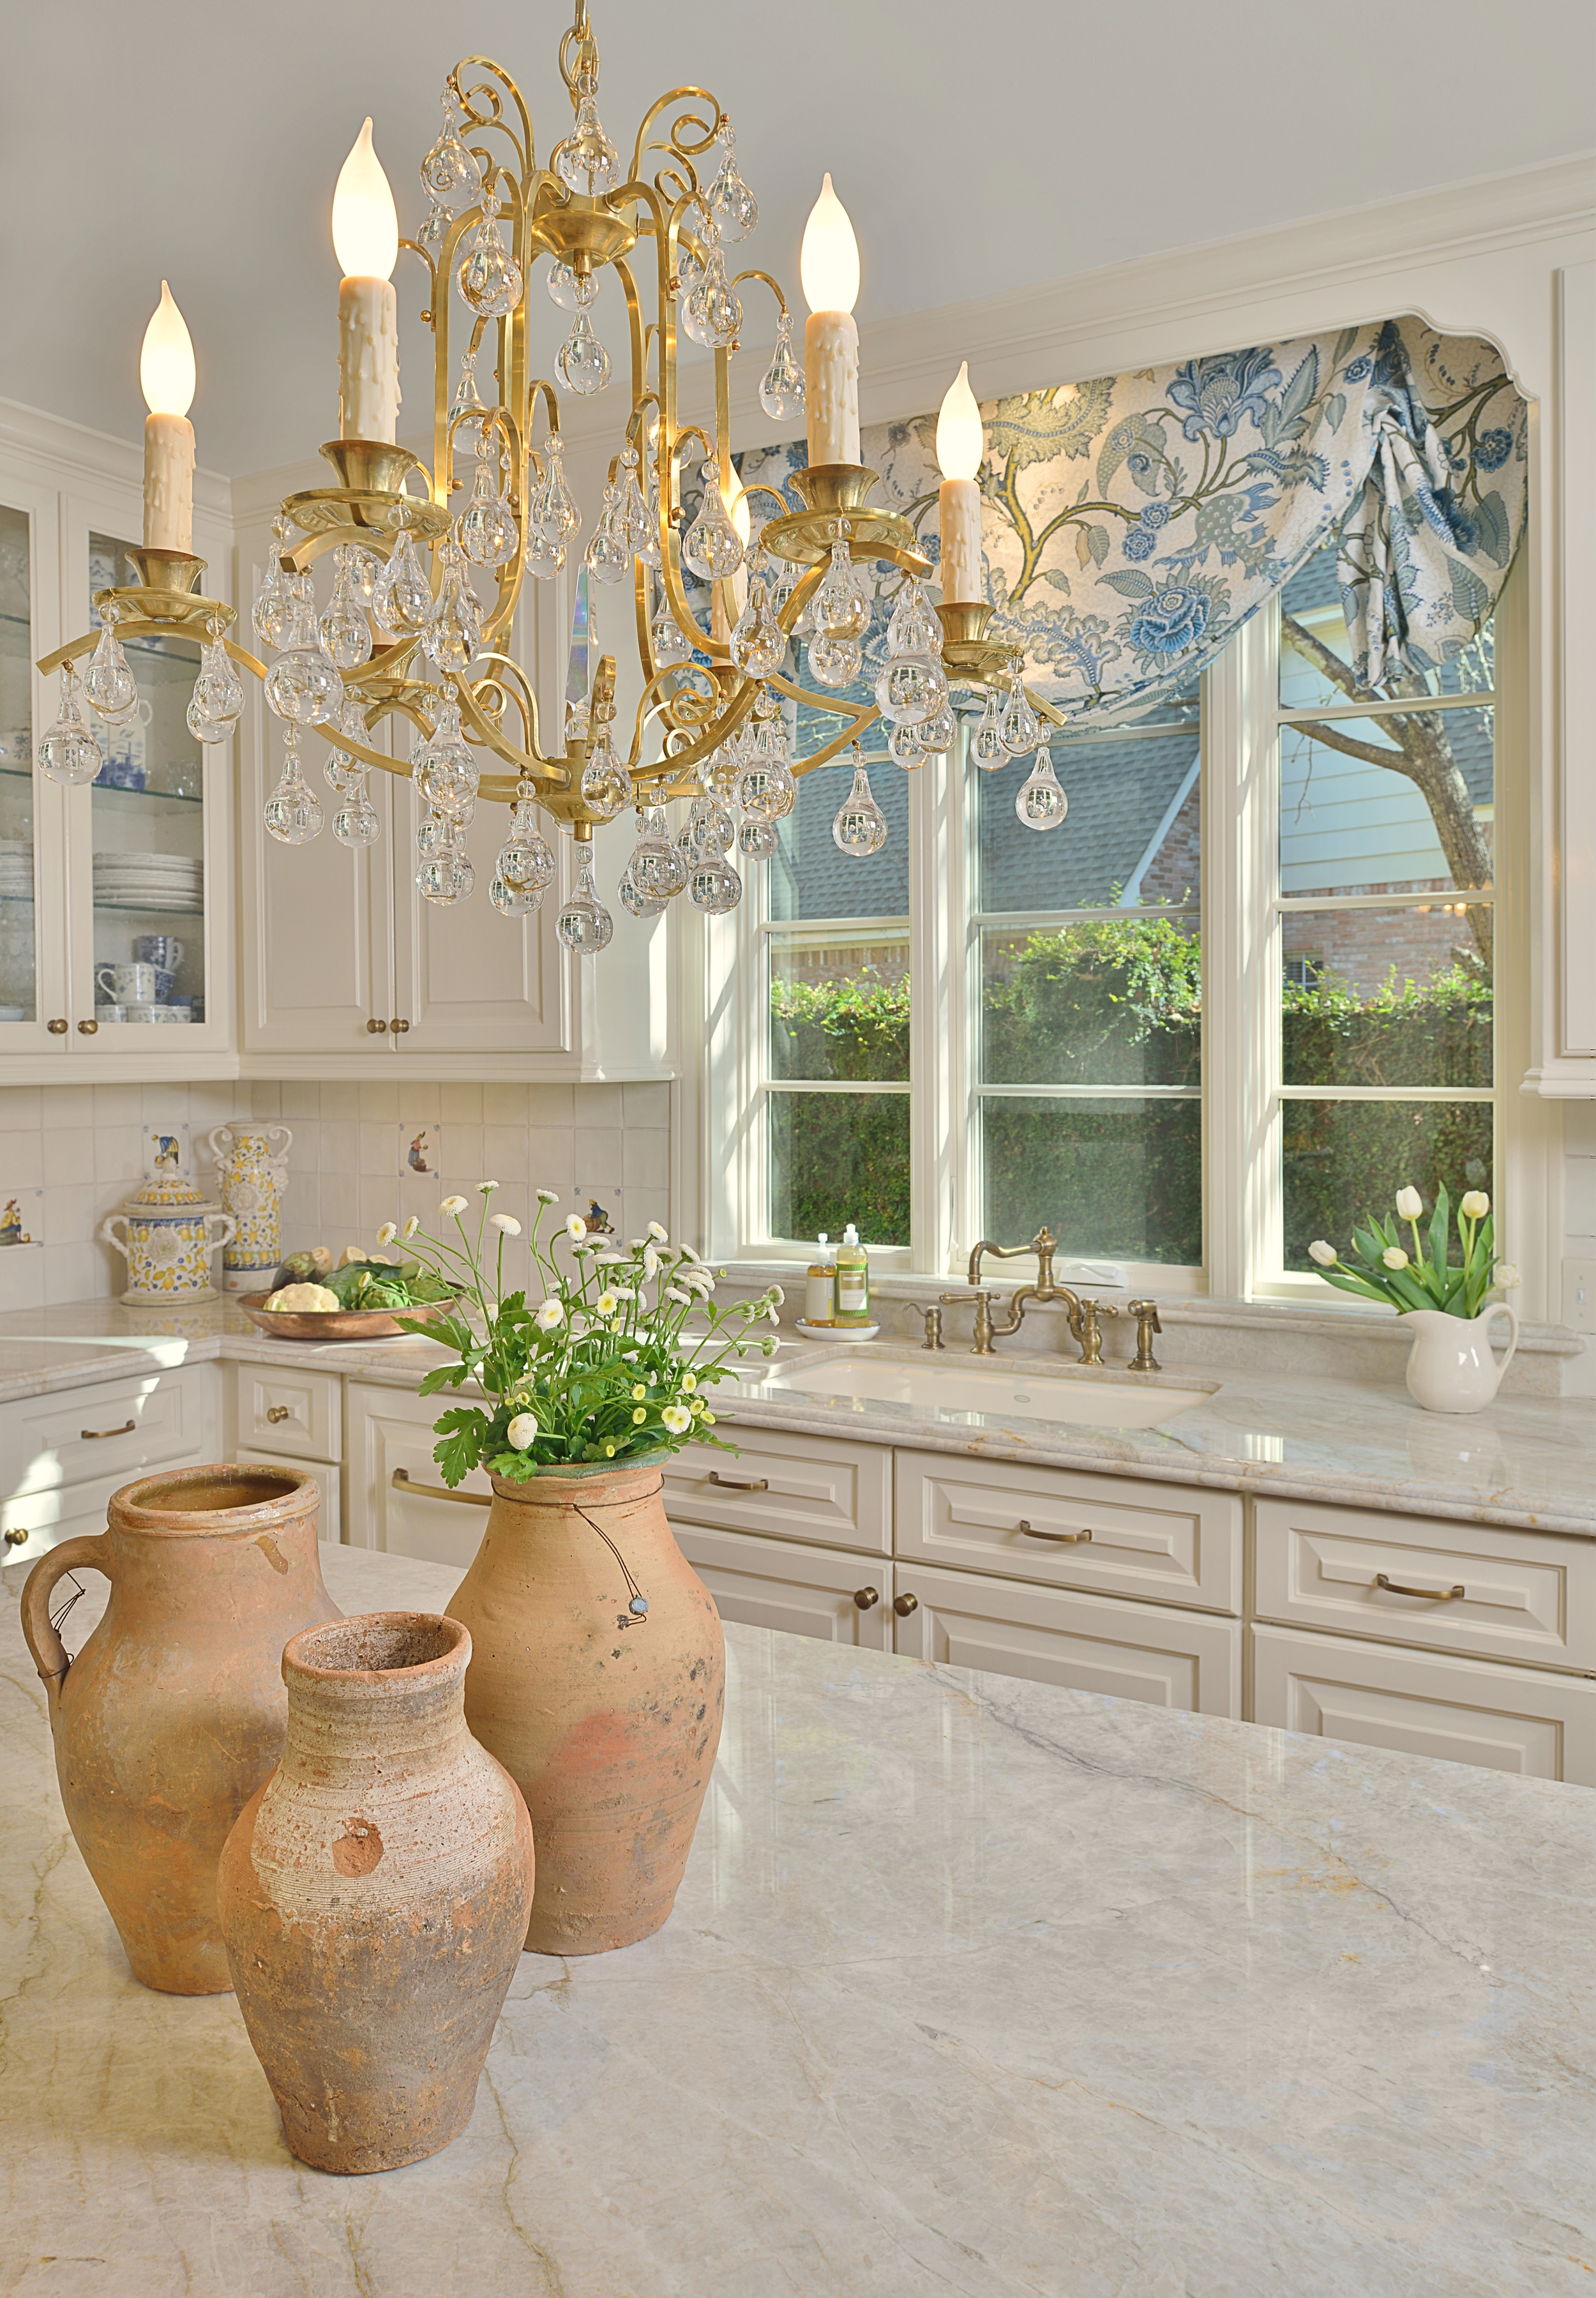 A White Classic Kitchen With A Soft Look, Designer: Carla Aston